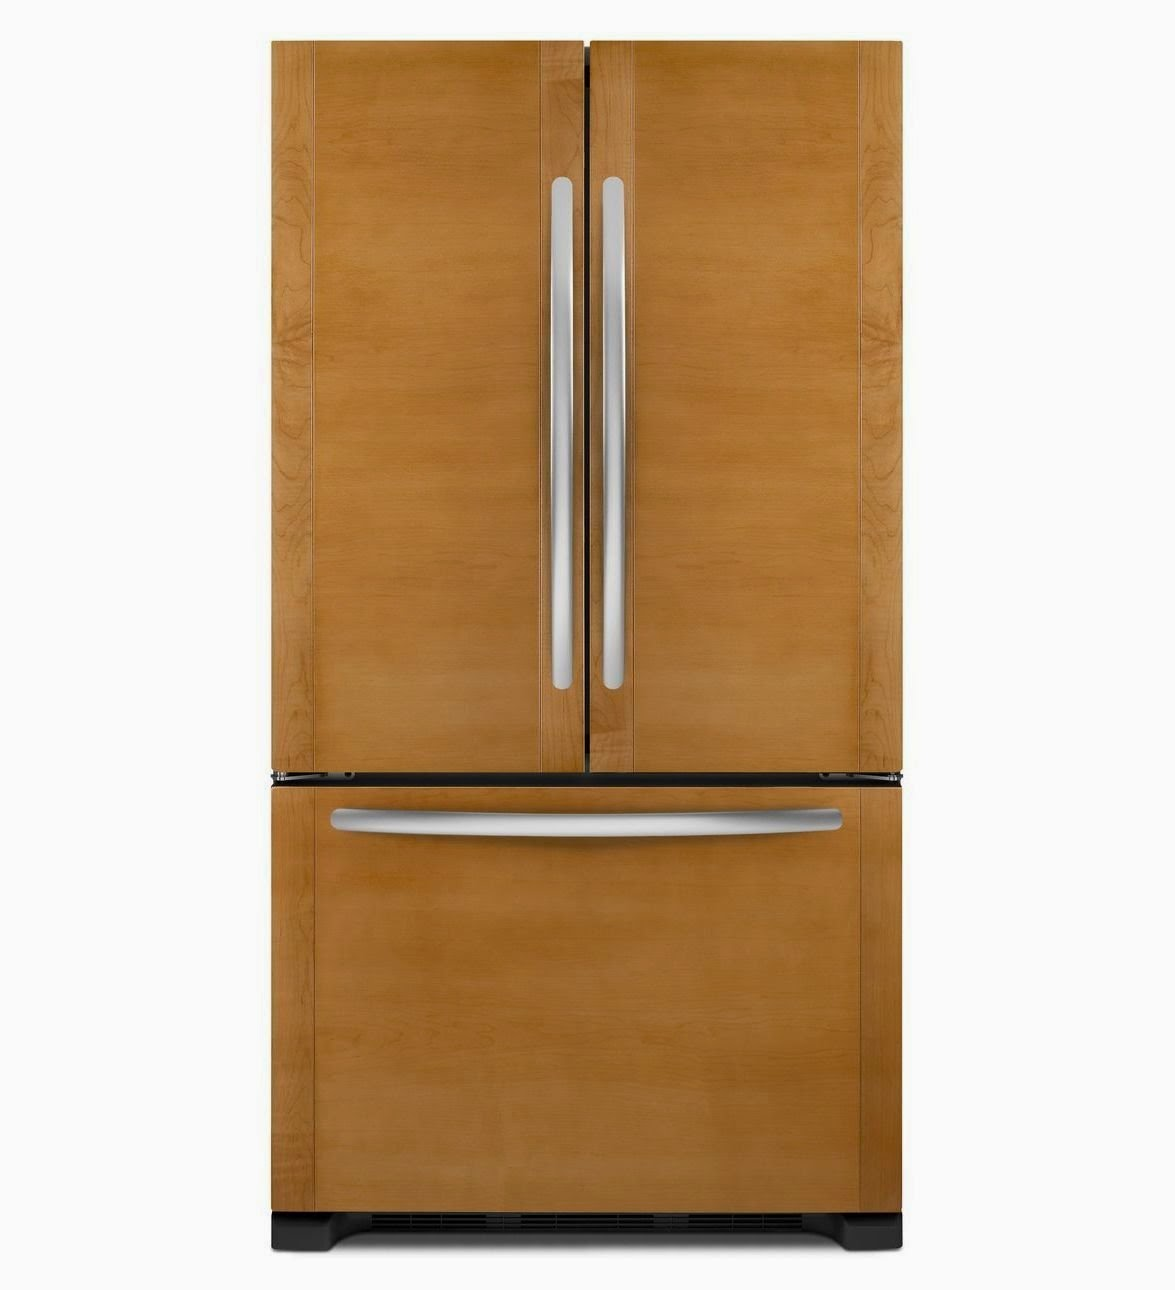 Shop Kitchenaid 24 8 Cu Ft Side By Side Refrigerator With: Counter Depth Refrigerators Reviews: Kitchenaid Counter